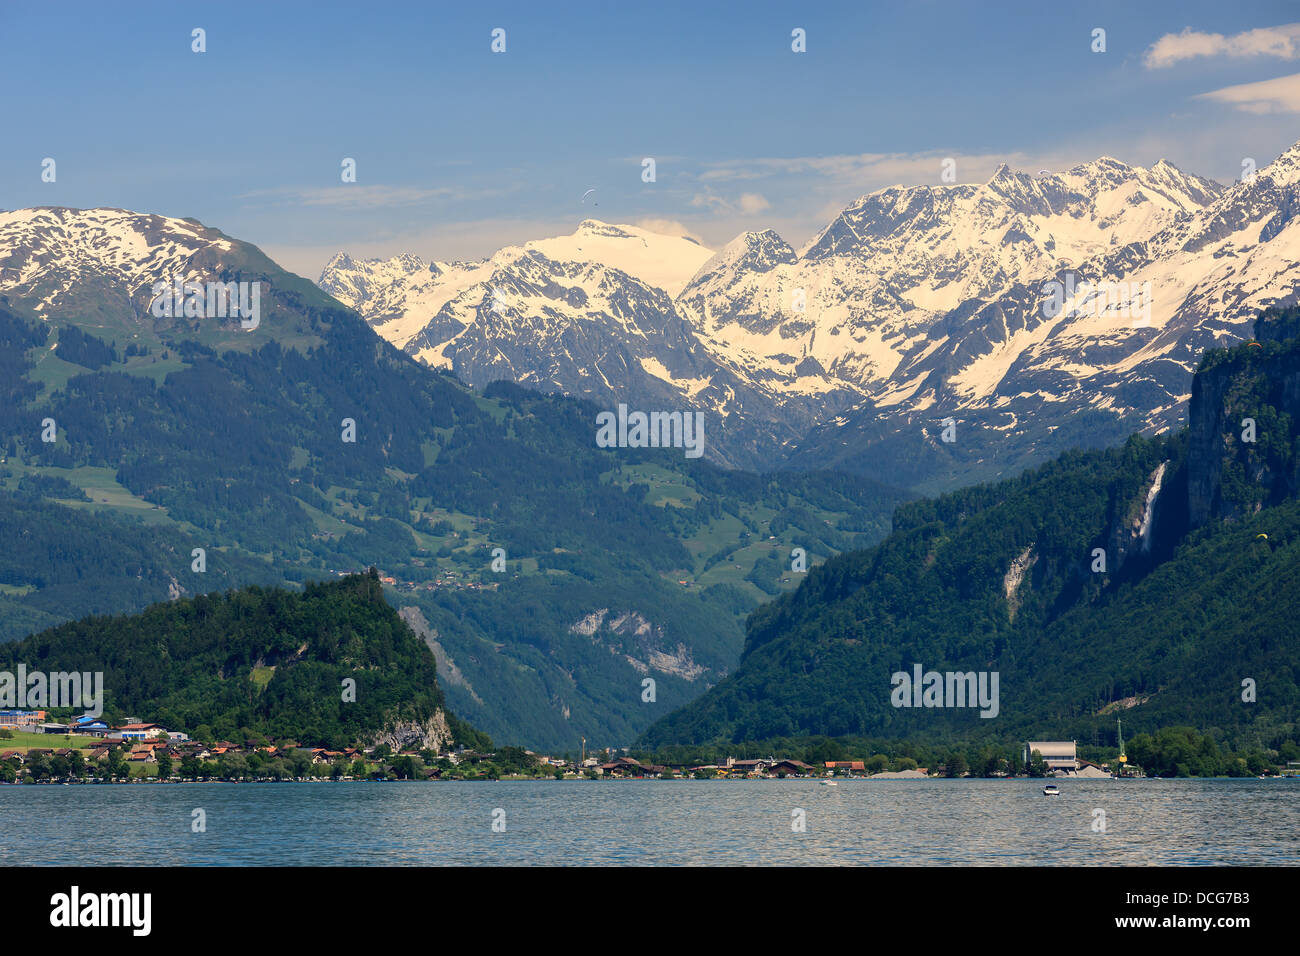 View on Brienz and the lake taken from Oberried, Switzerland - Stock Image